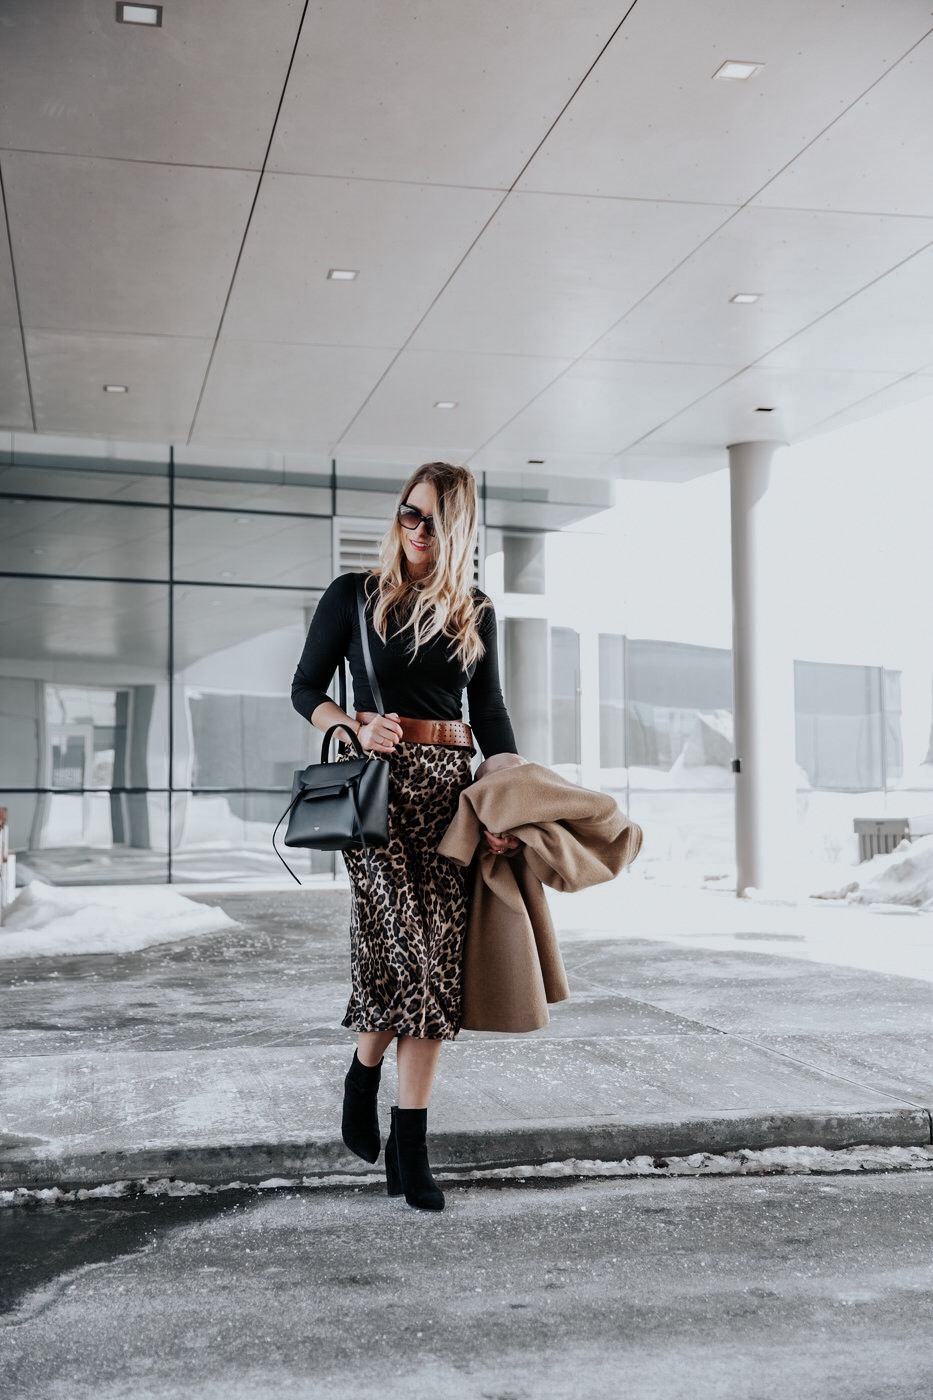 02cb253091 That said, what to wear to work when the temperatures are still chilly but  snow is melting and you want to break out some new spring trends is what  today's ...